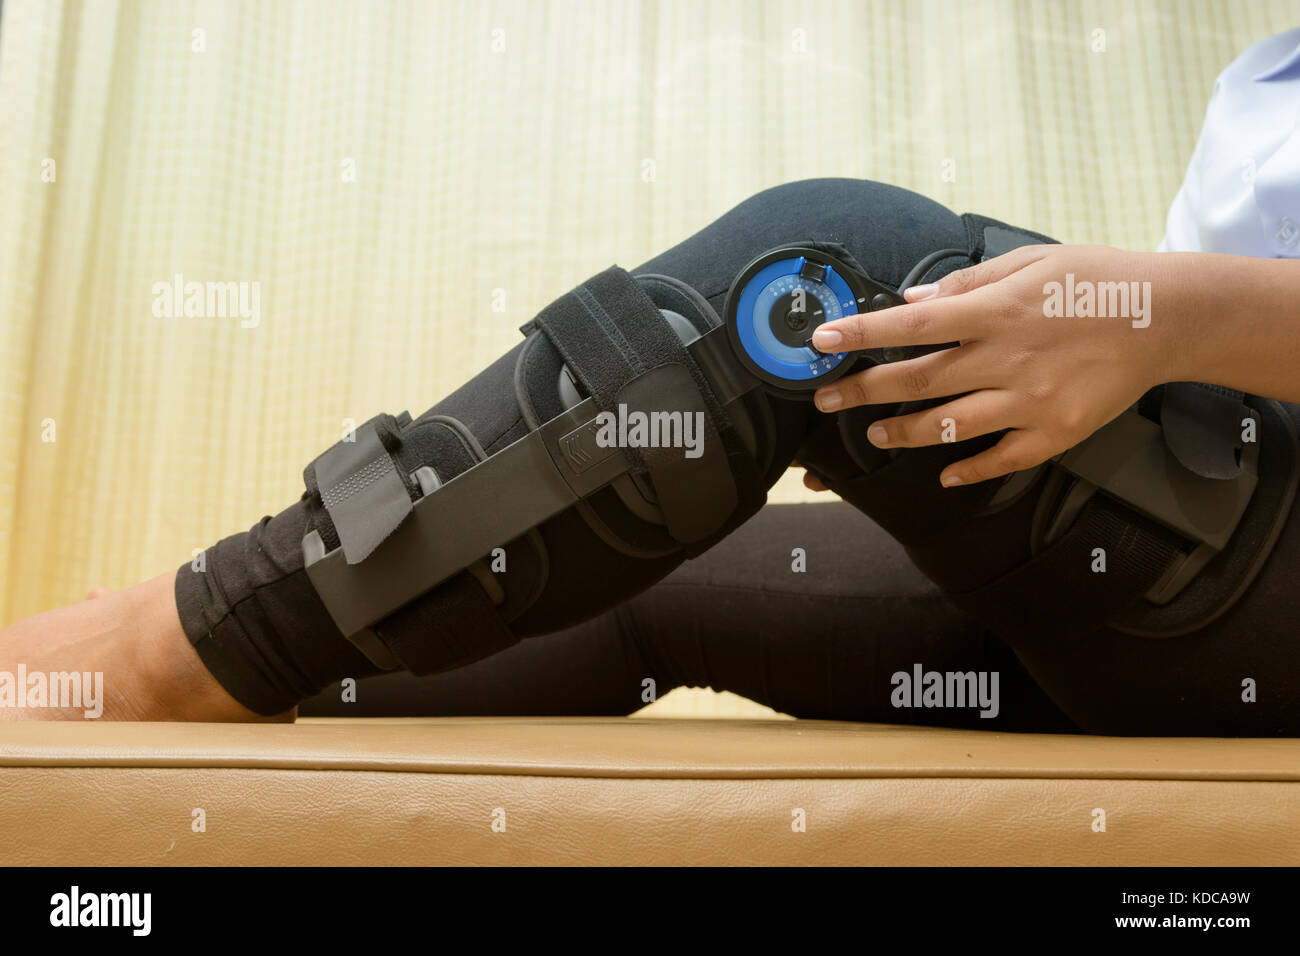 Patient adjustable angle on knee brace ,Knee support for leg or knee injury - Stock Image